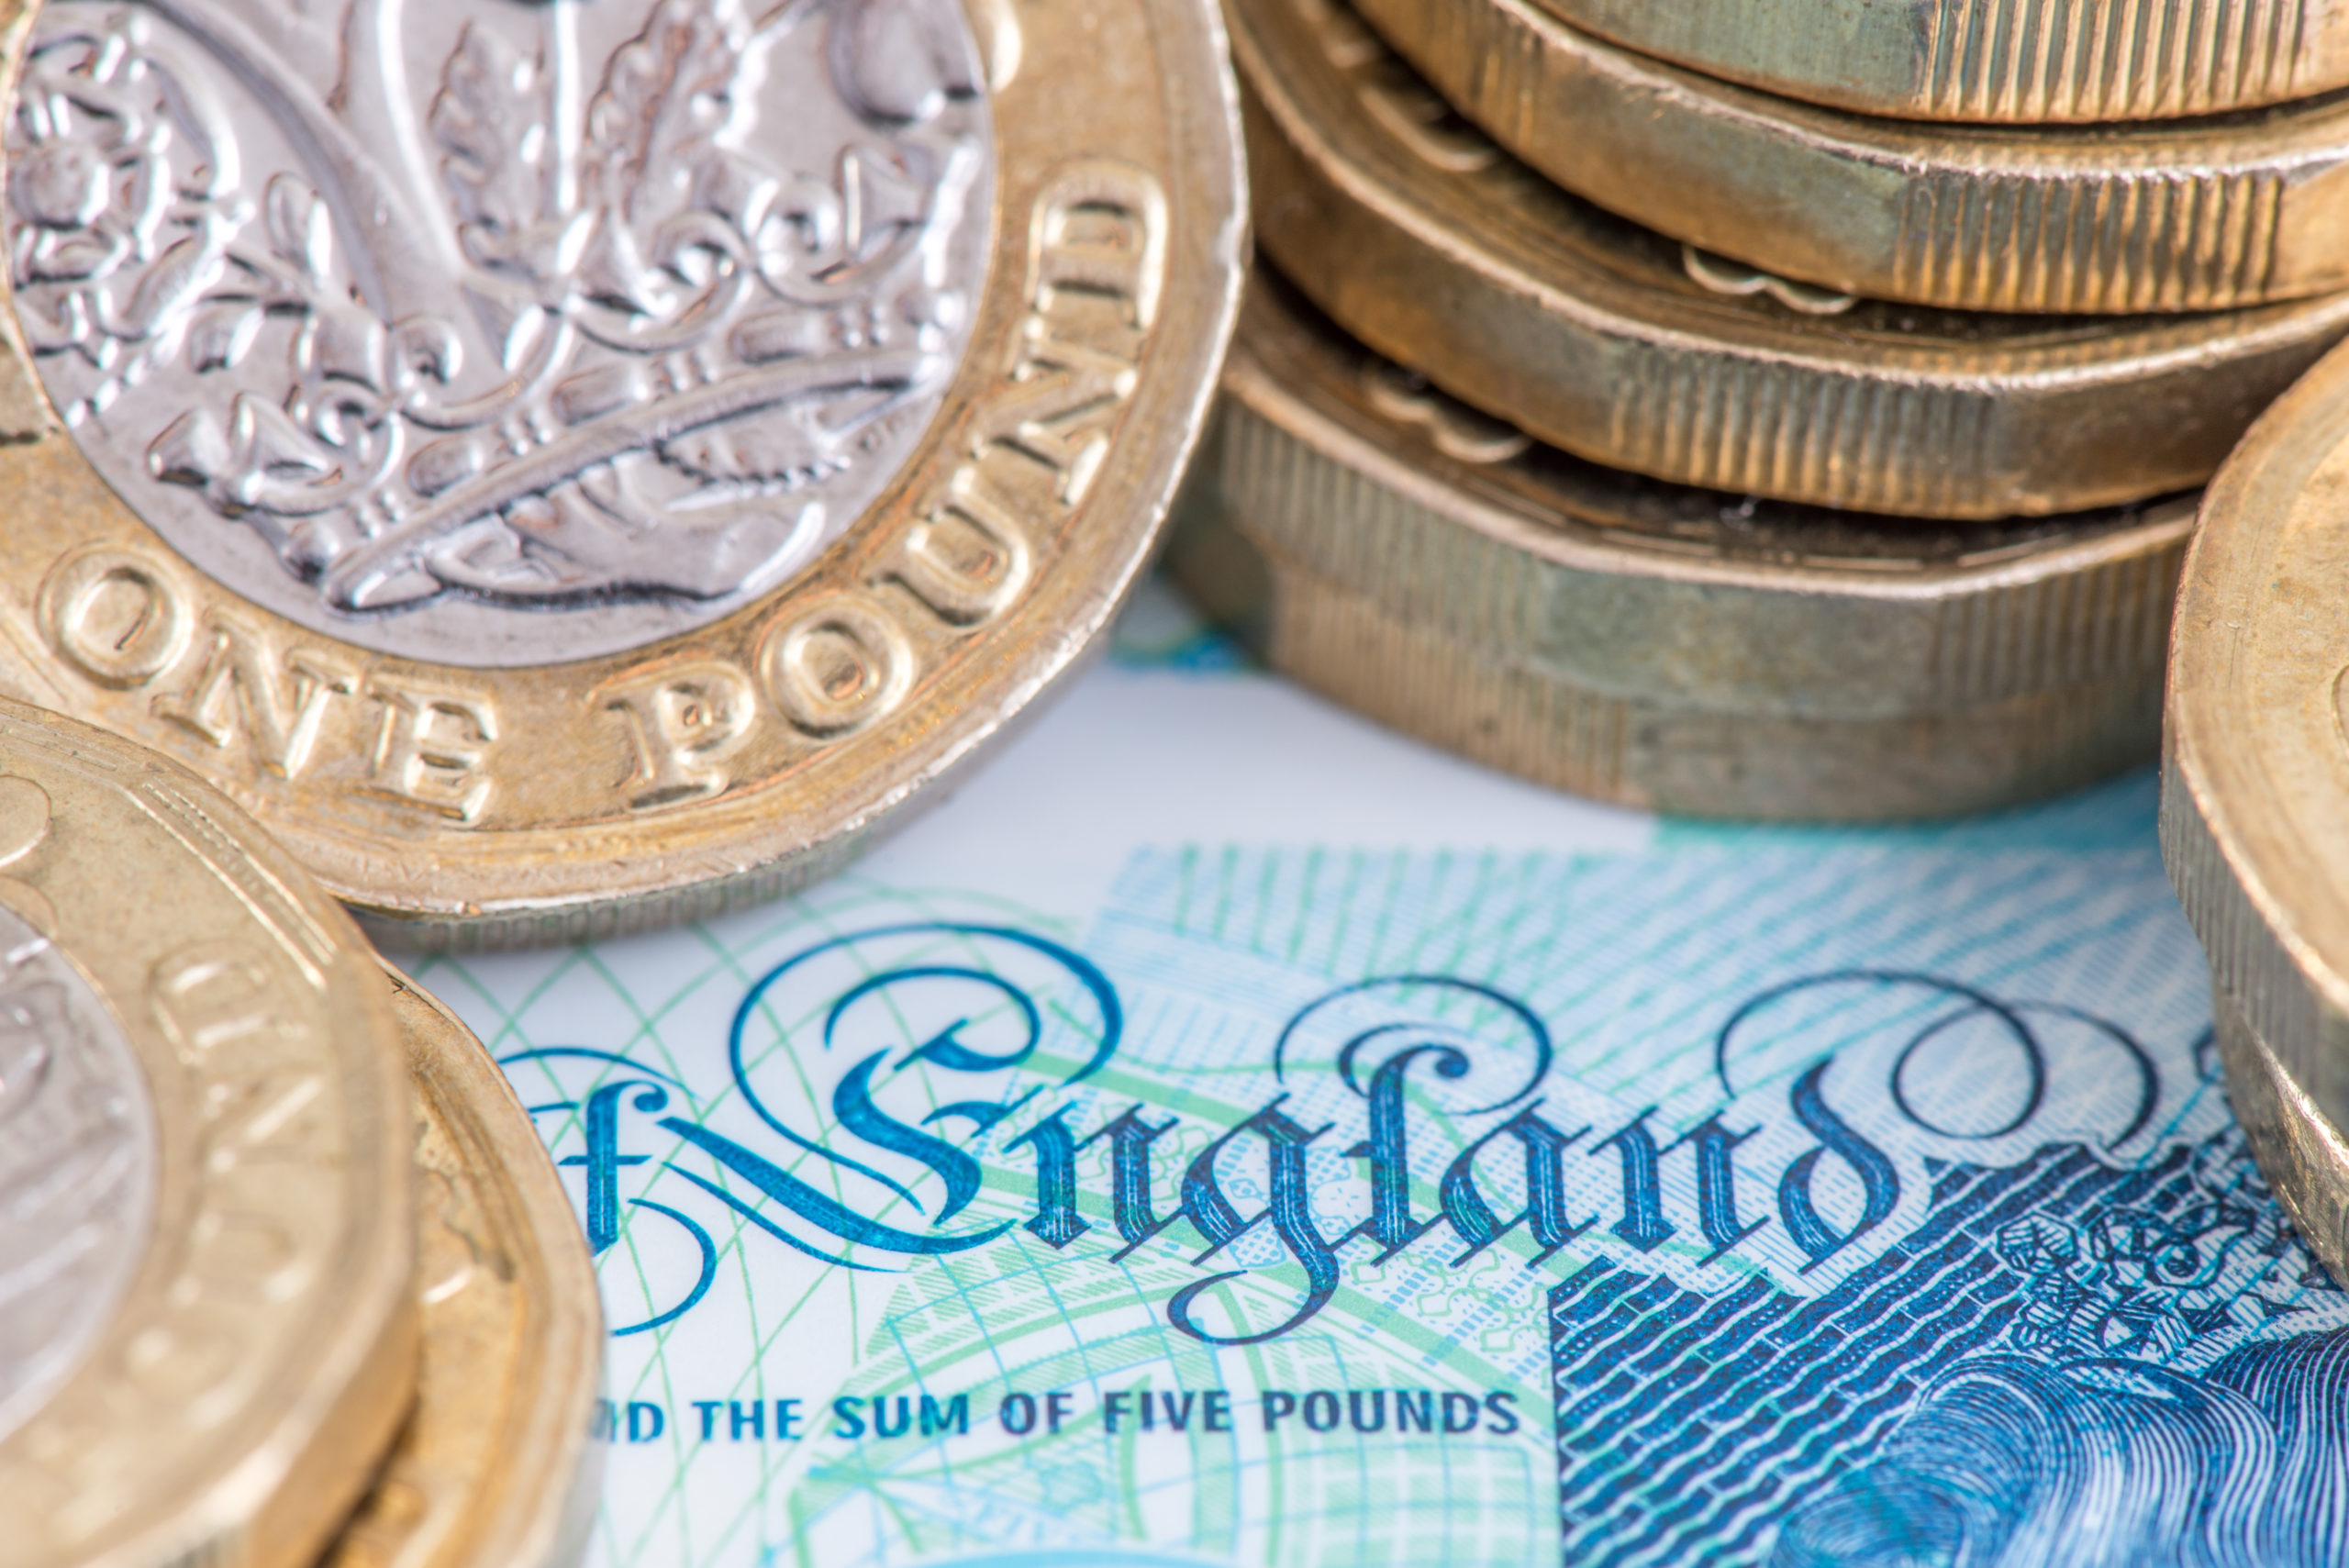 02/06 – Sterling pulls back from highs